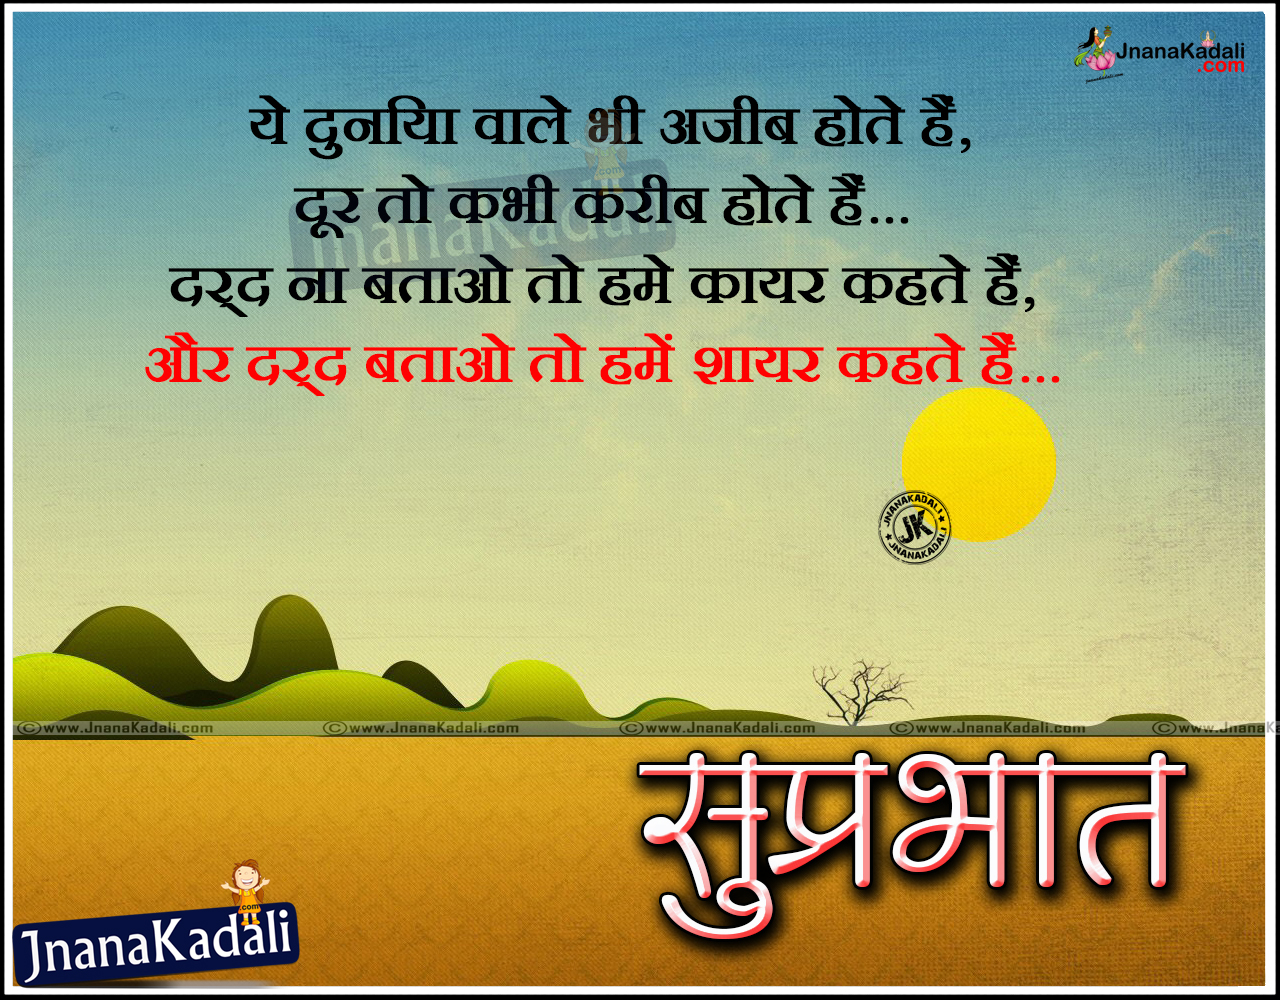 images of nature with quotes hindi - photo #7